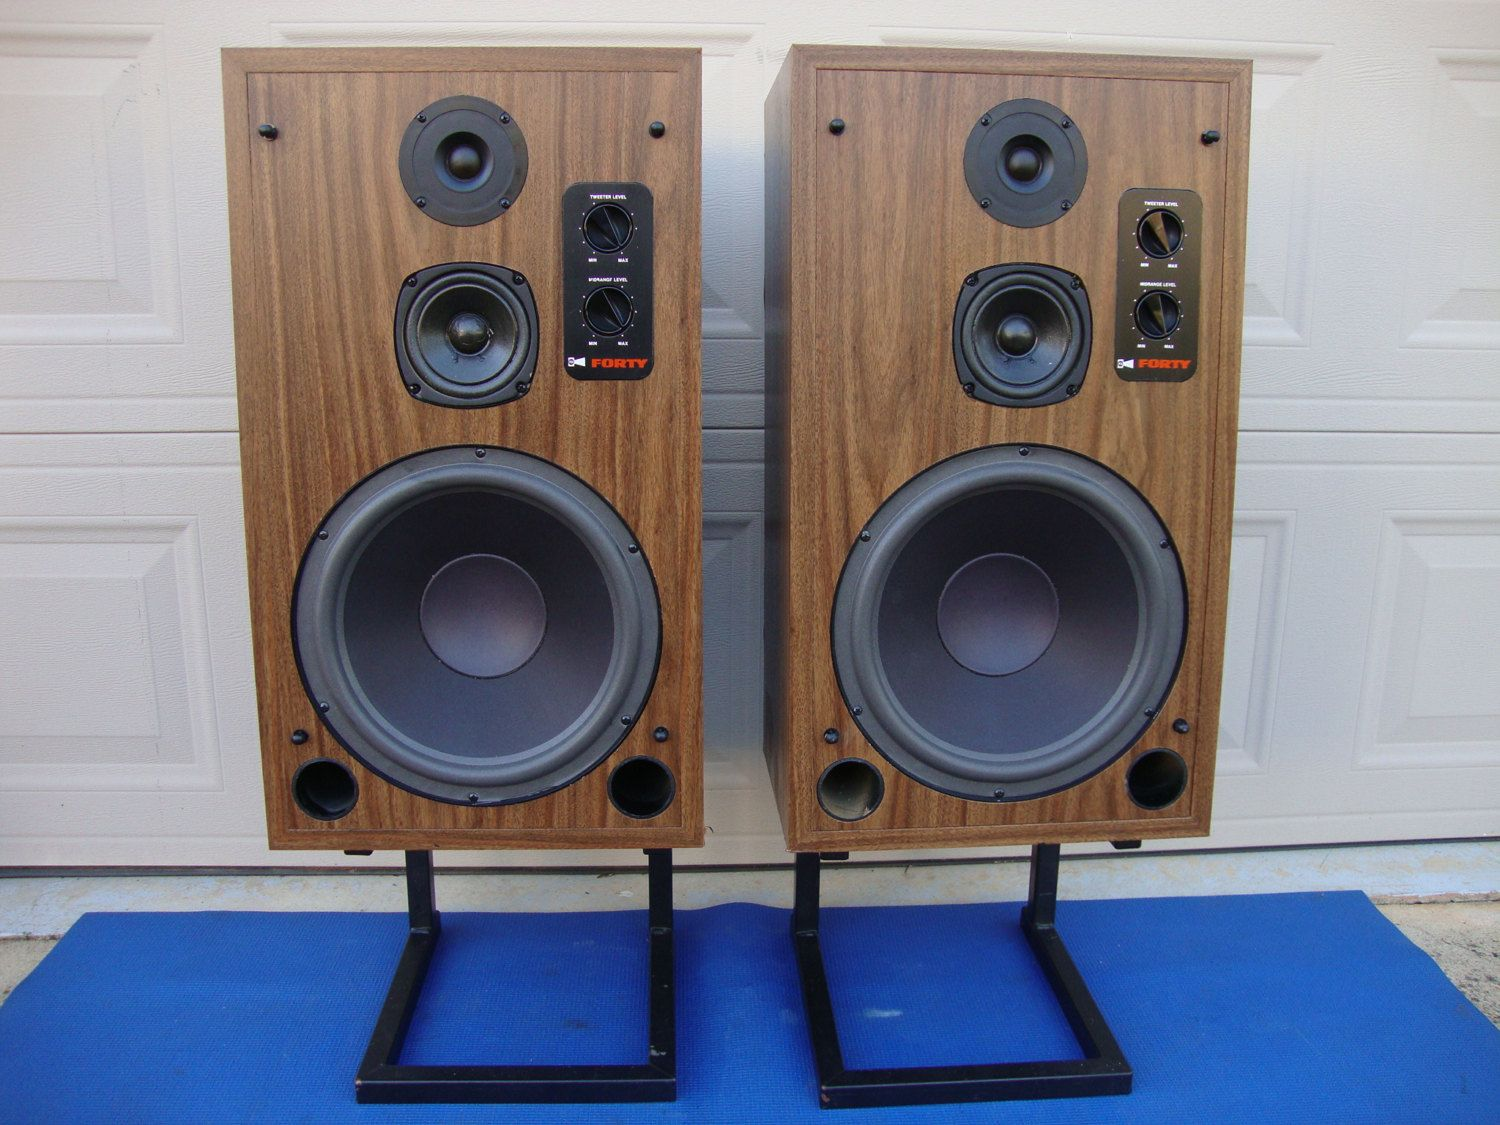 Legendary Roger Sound Lab (RSL) Forty Floor Speakers w/ Vifa Drivers